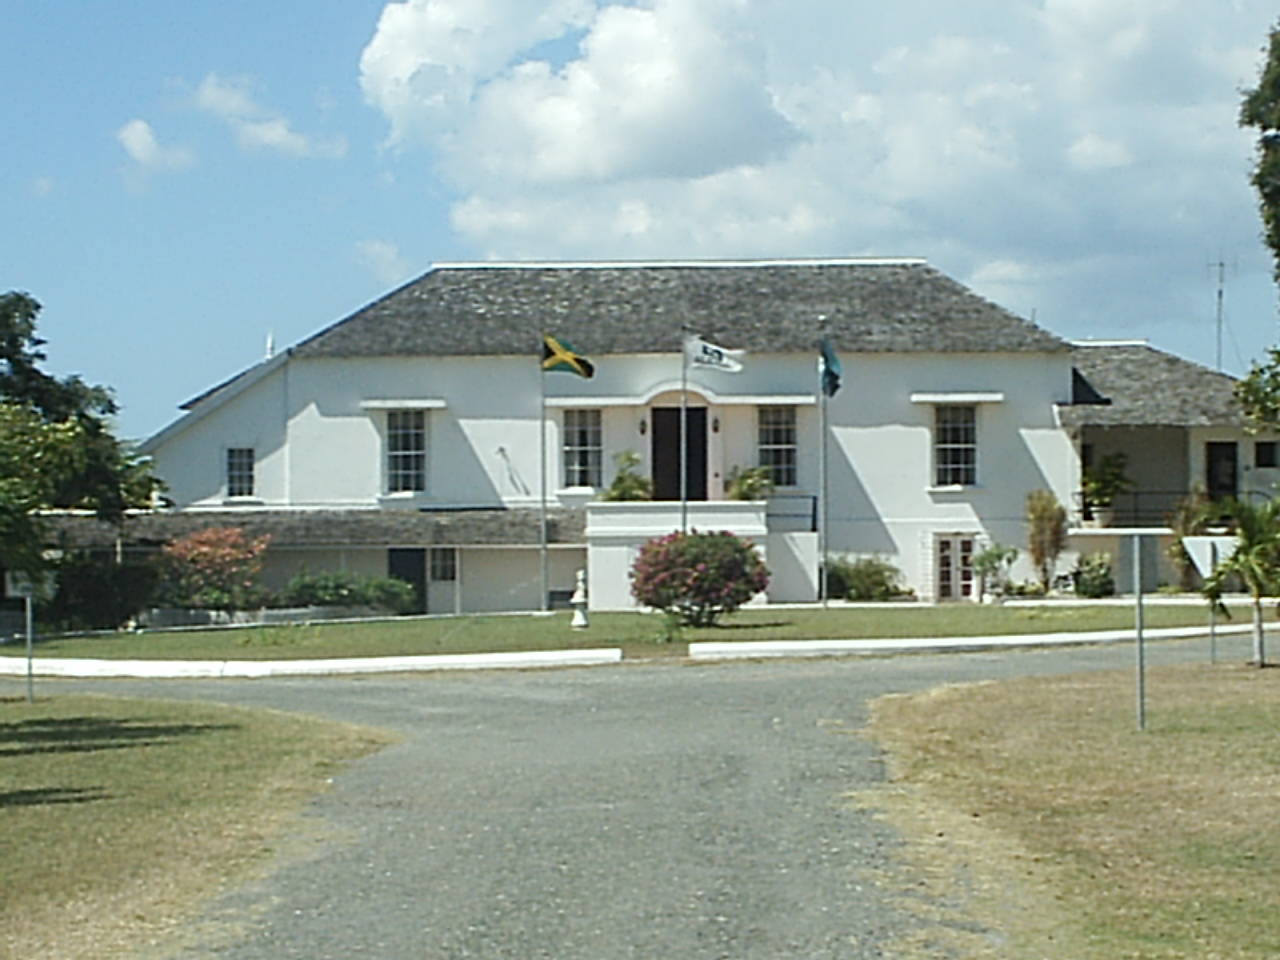 halse-hall-great-house-clarendon